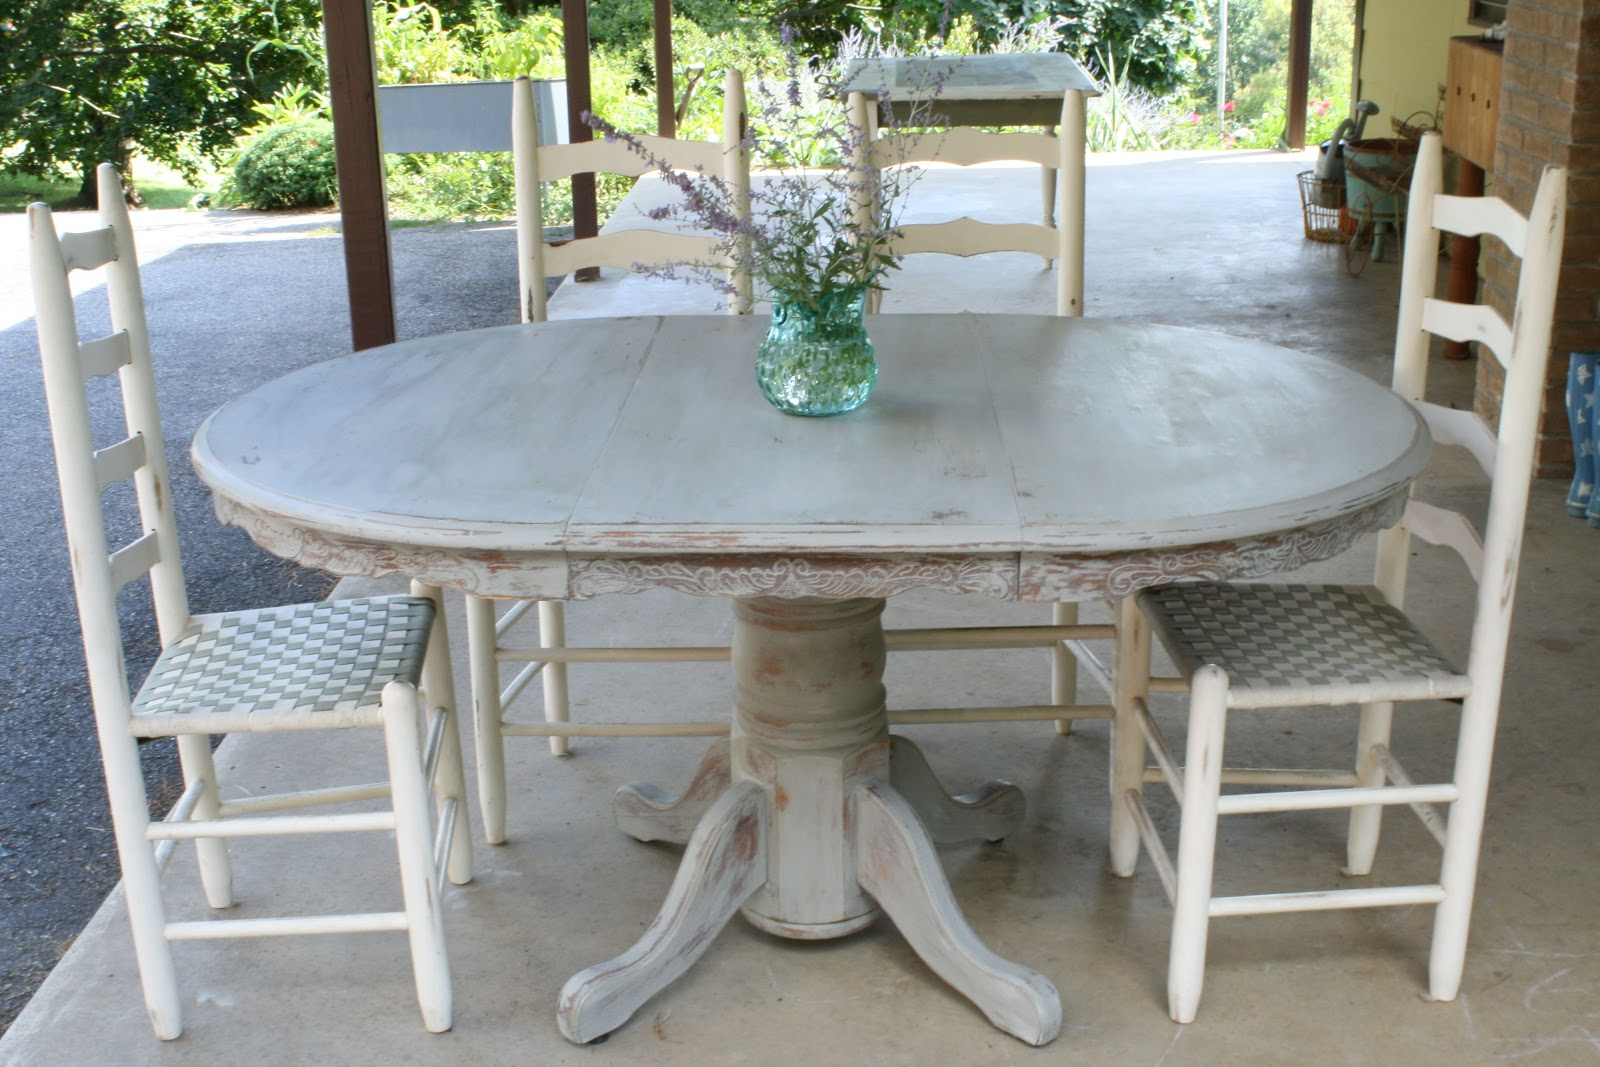 Weathered Paris Gray Dining Table - Cassie Bustamante